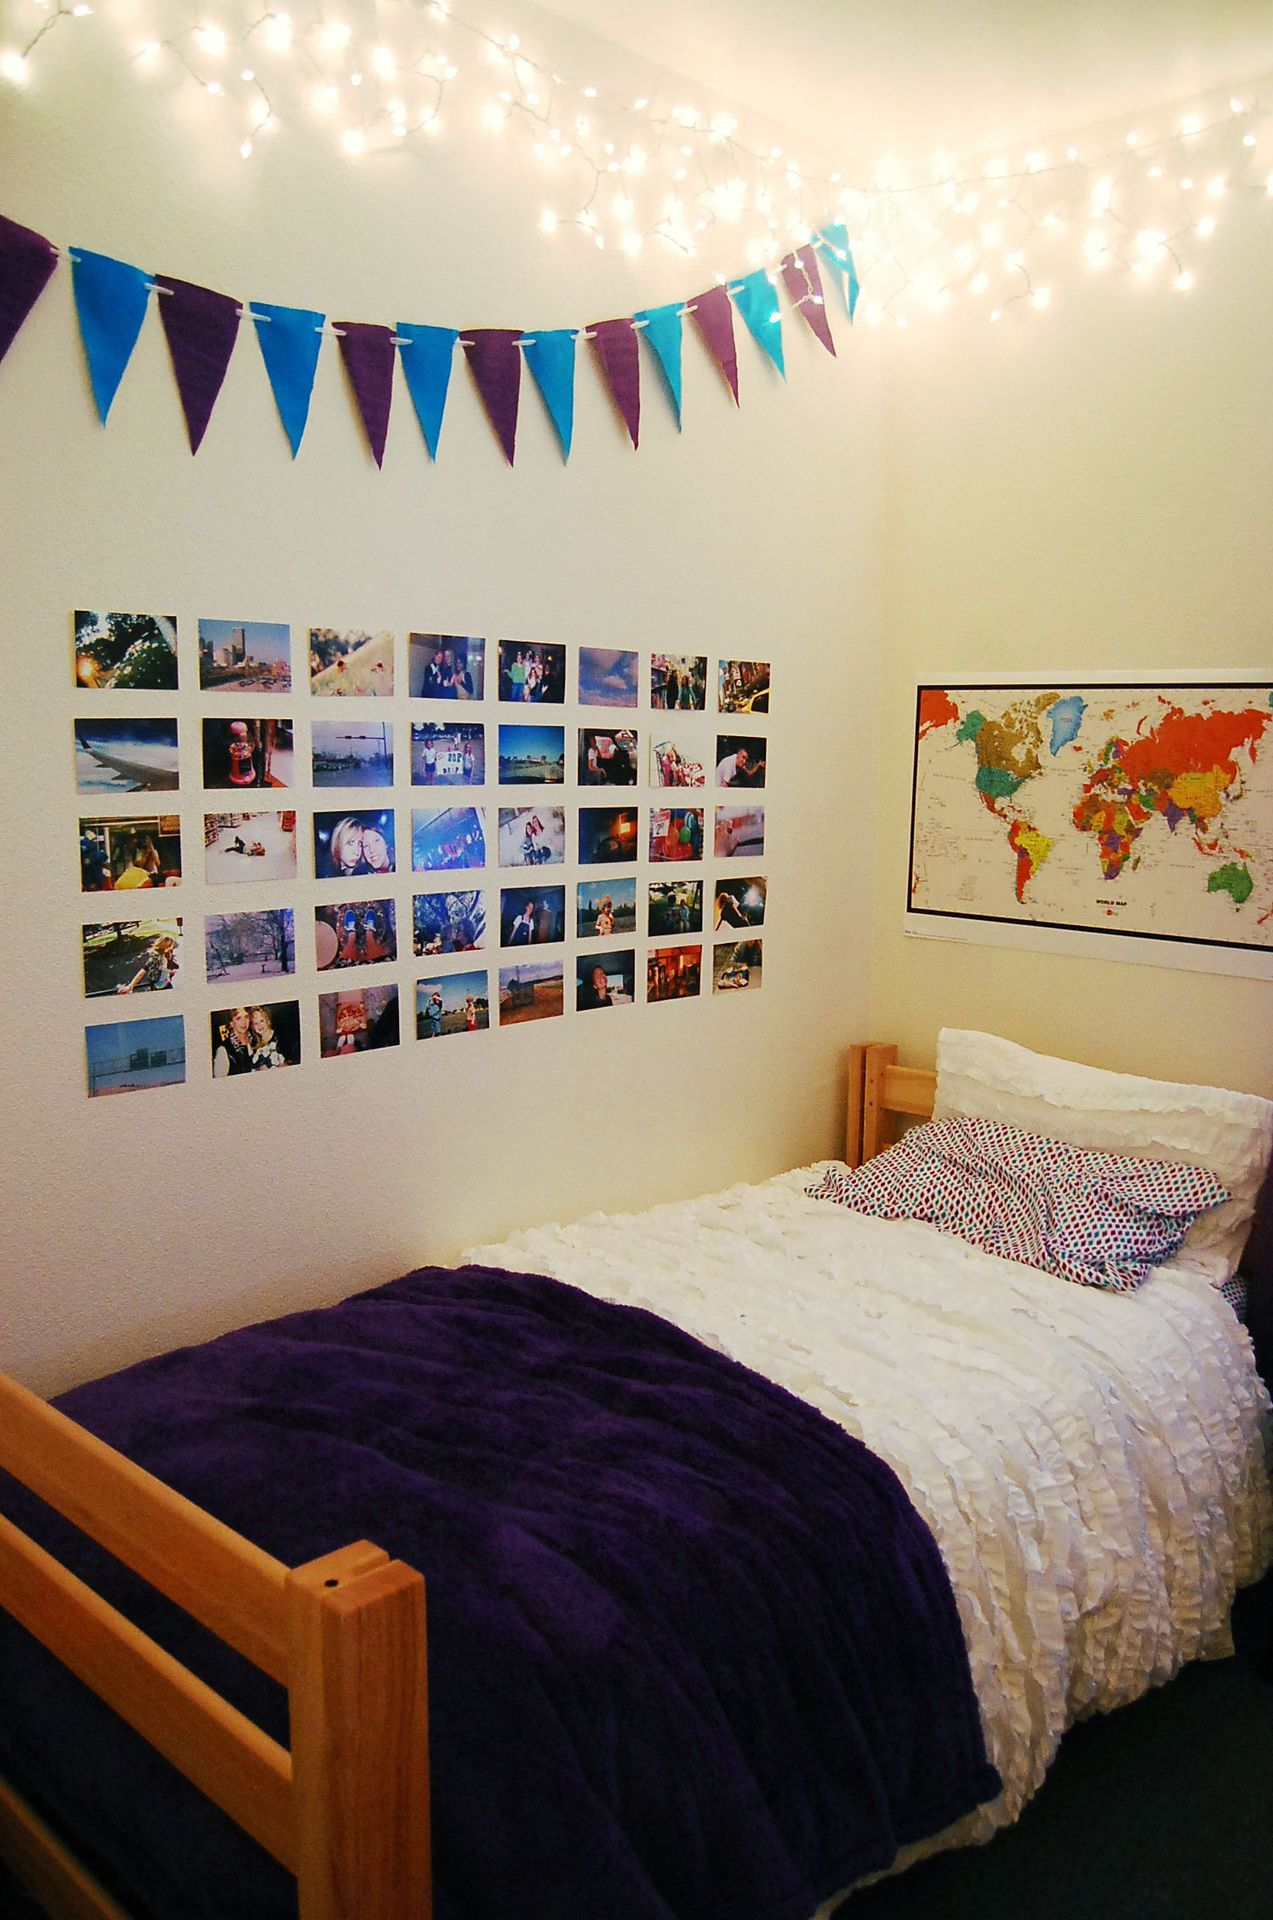 dorm room | tumblr | college ideas | pinterest | dorm rooms, dorm